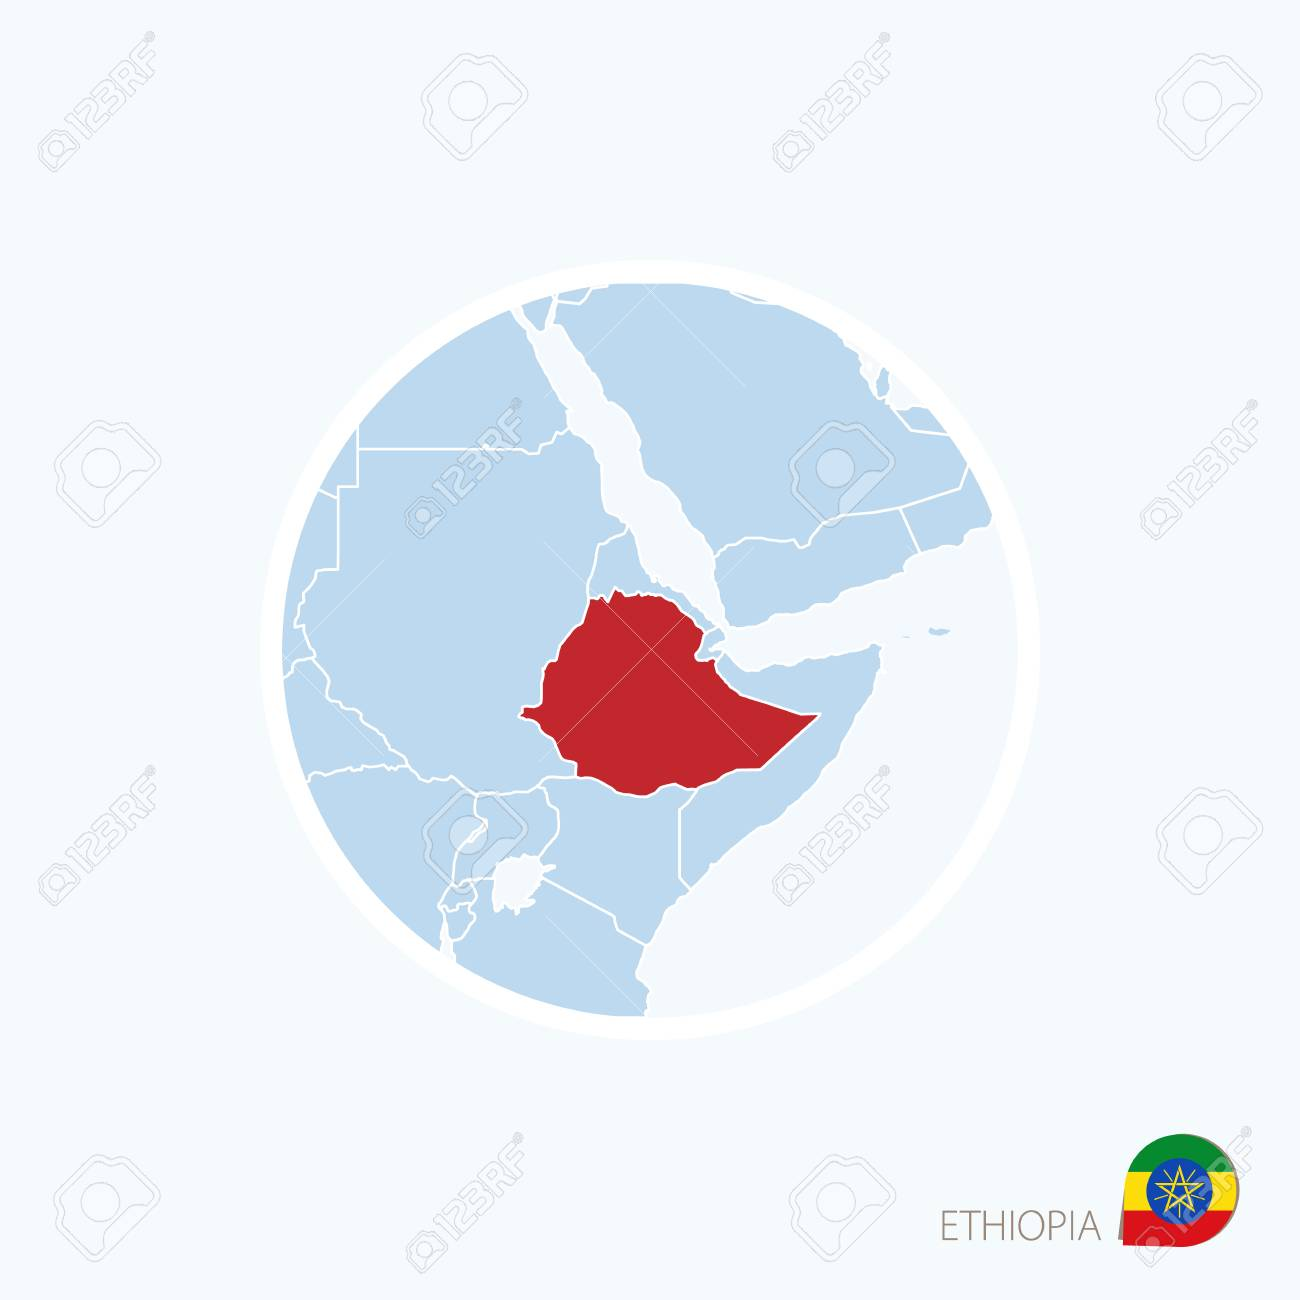 Map Of Ethiopia In Africa.Map Icon Of Ethiopia Blue Map Of Africa With Highlighted Ethiopia